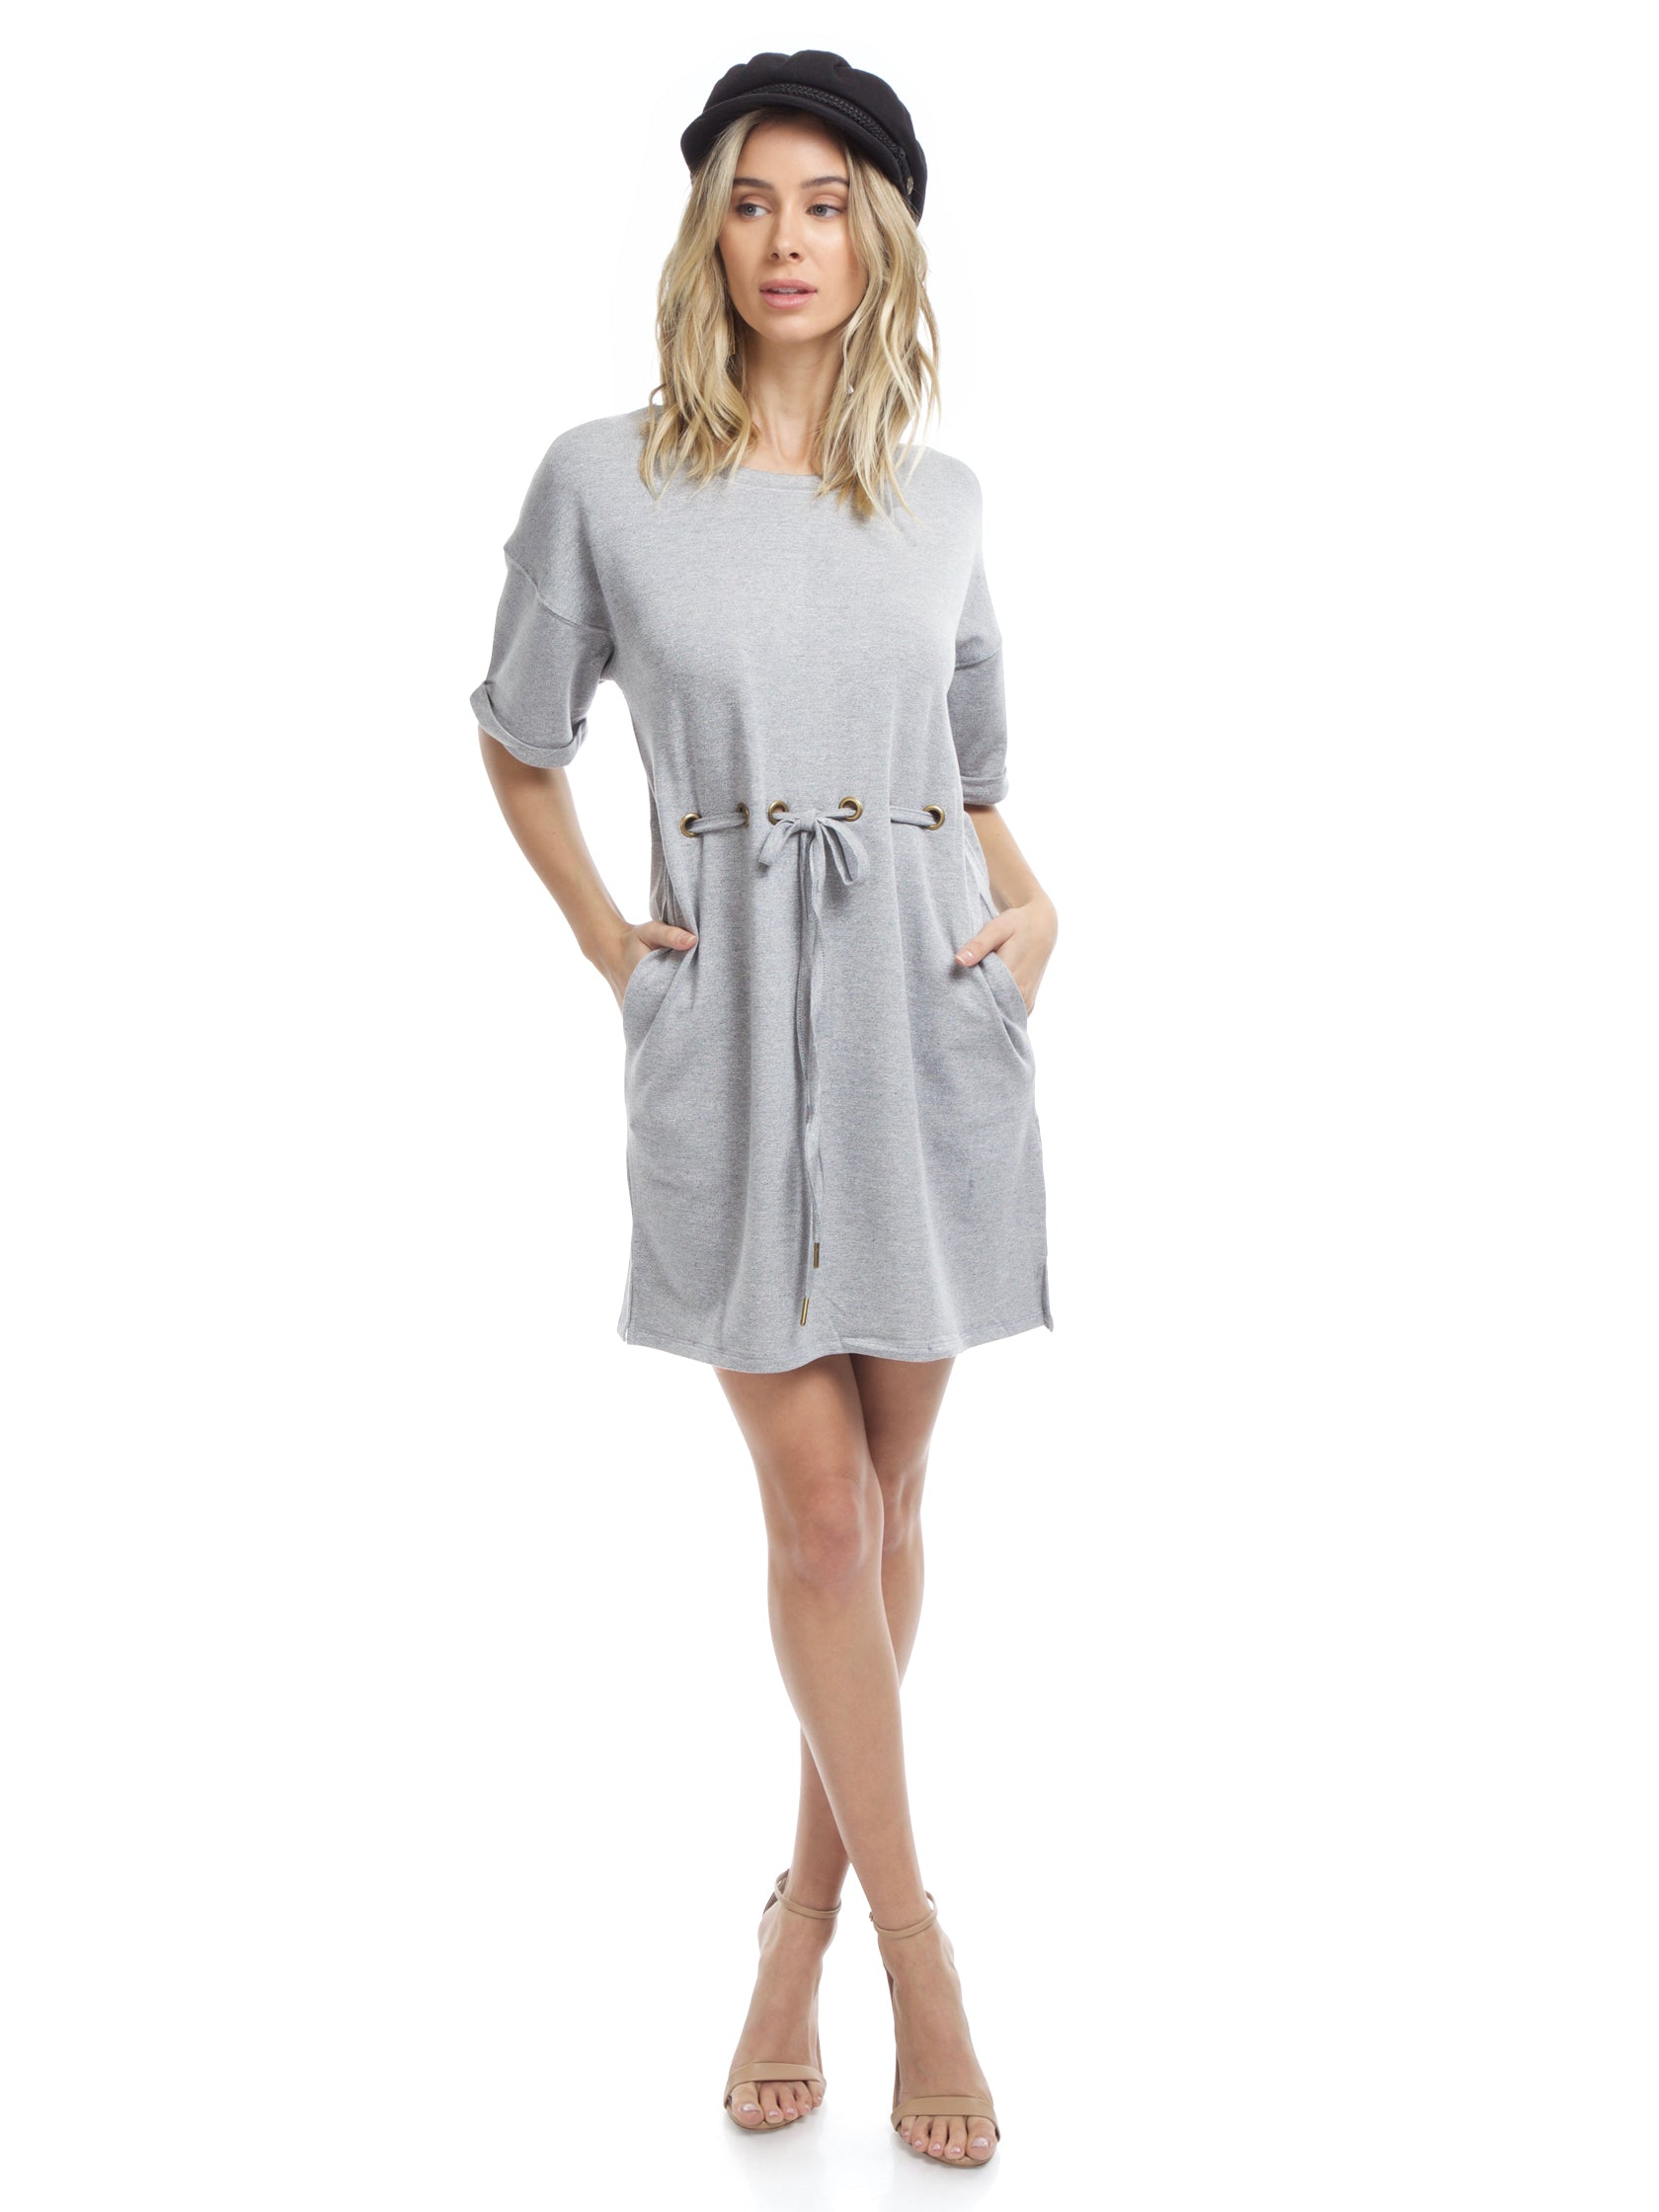 Girl outfit in a dress rental from FashionPass called Jamie Belt Shirt Dress